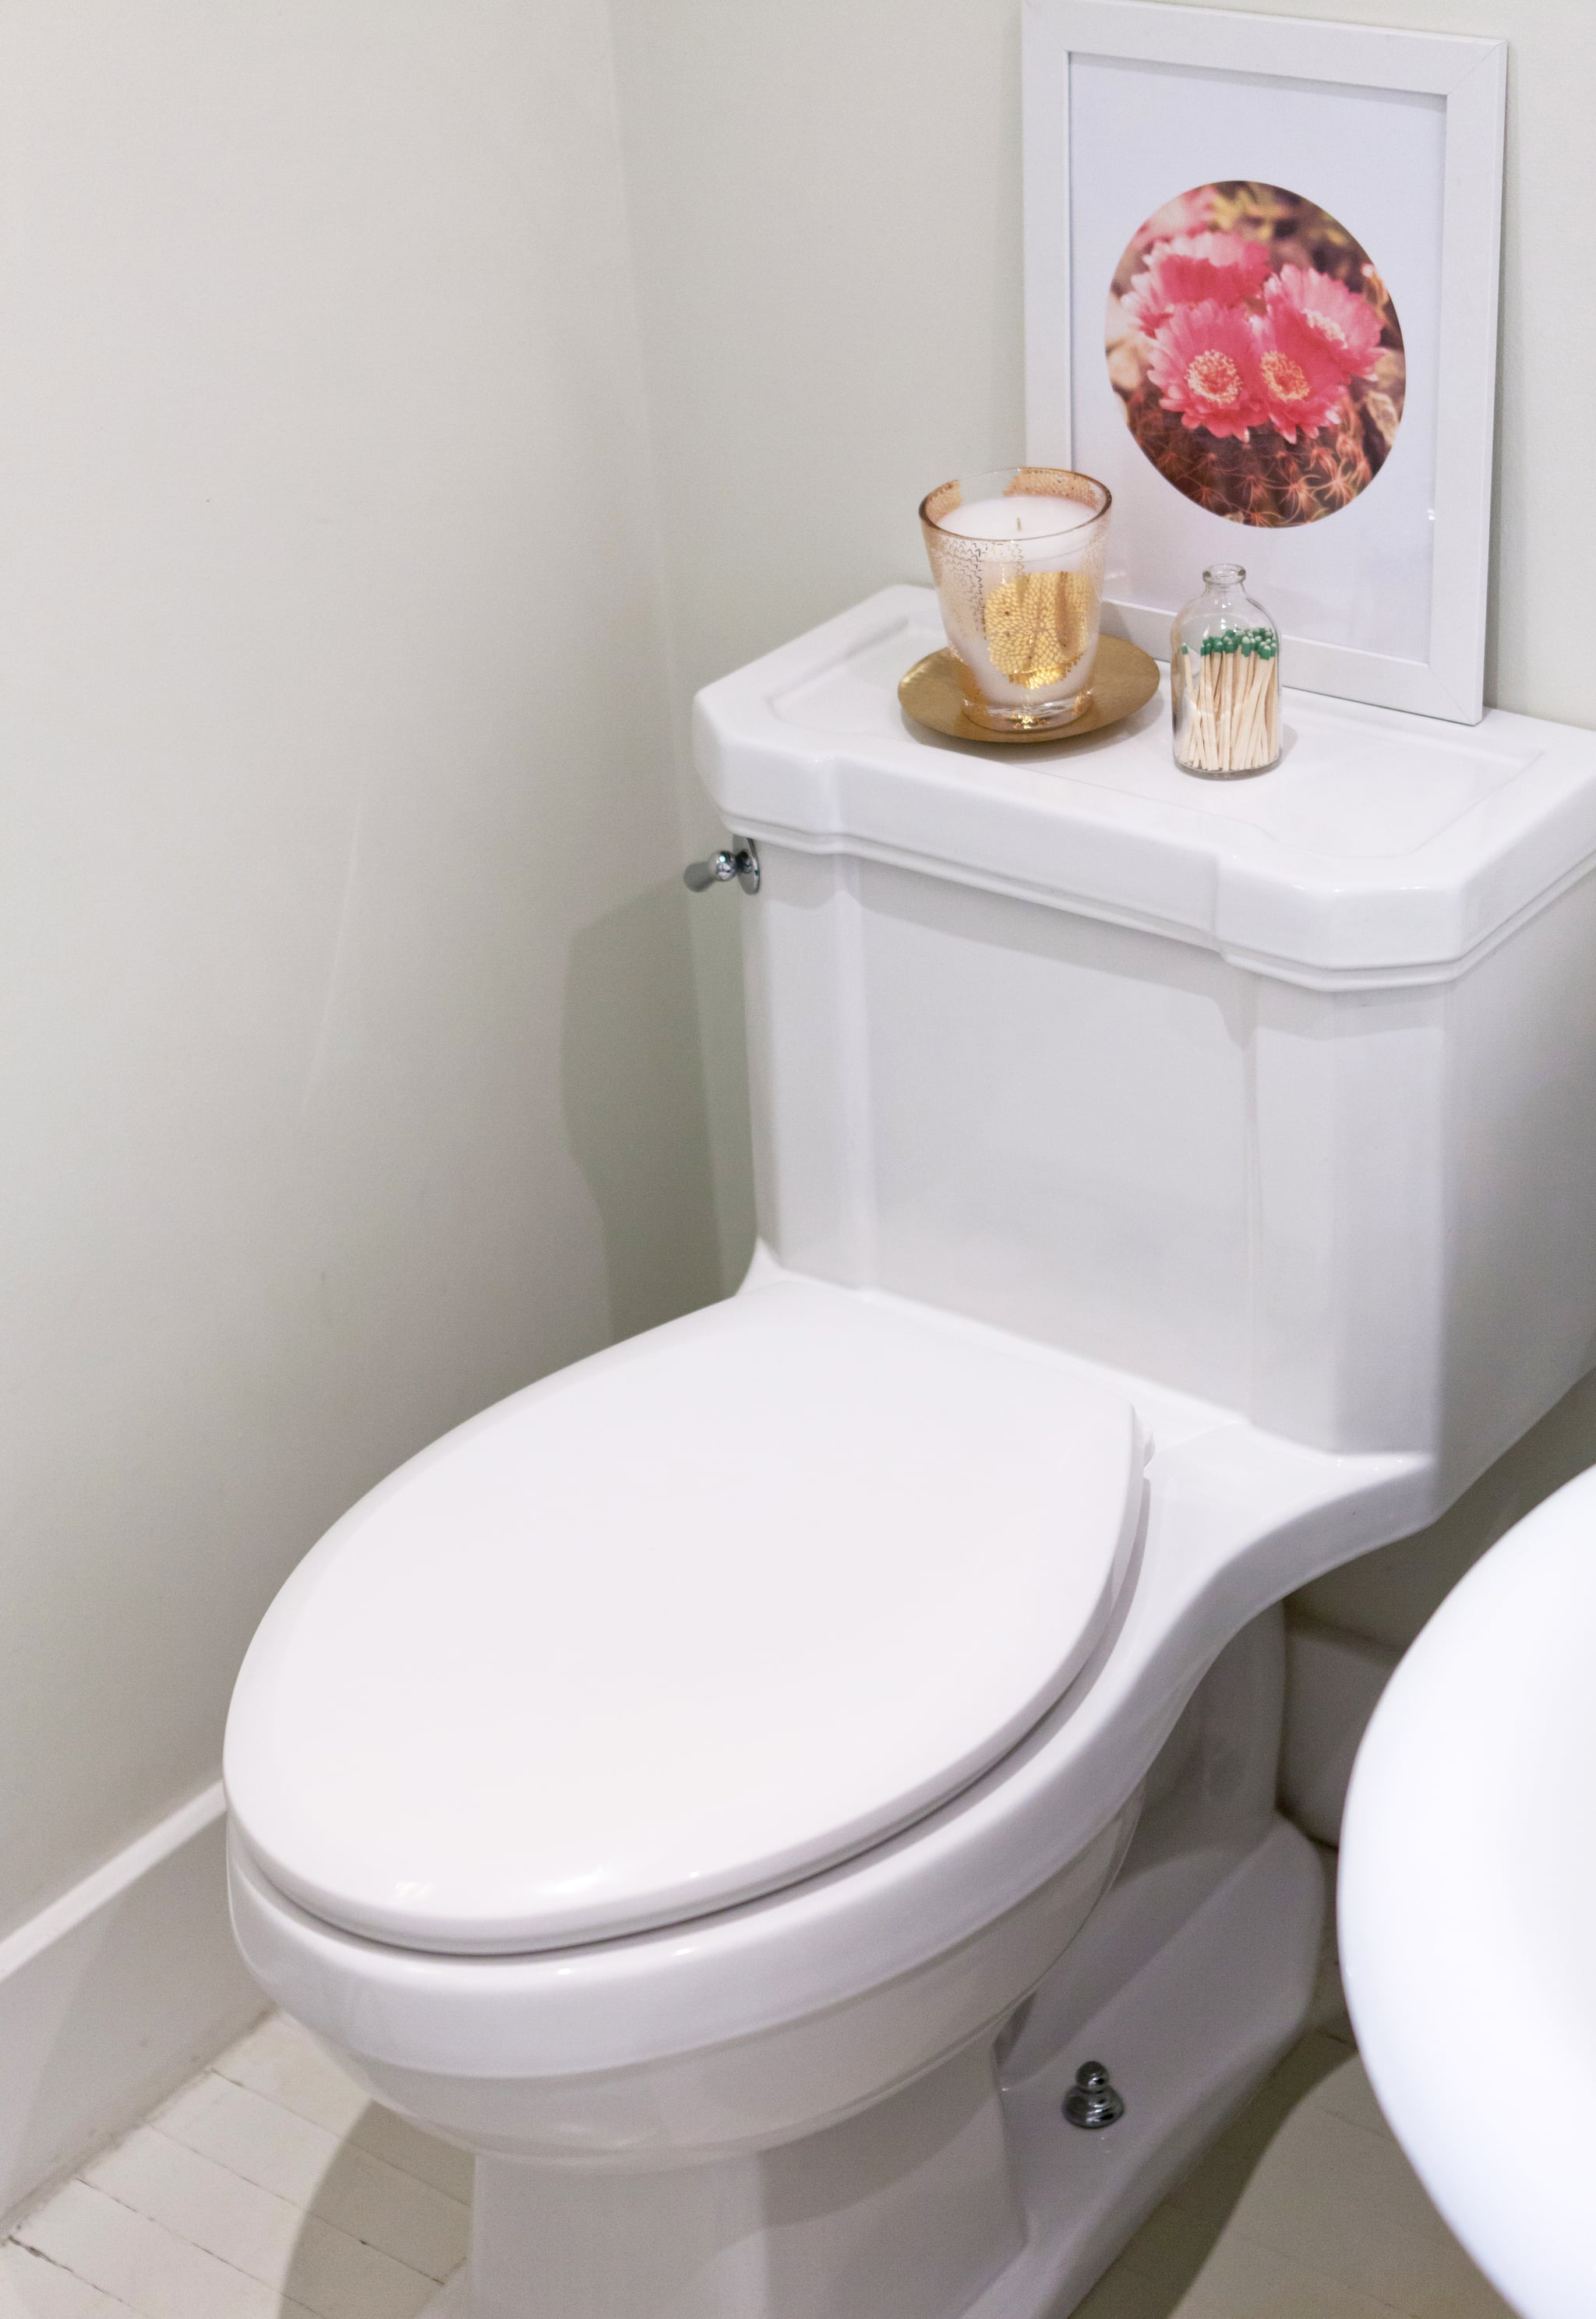 Things You Should Know Before Buying A Bidet Popsugar Beauty Australia